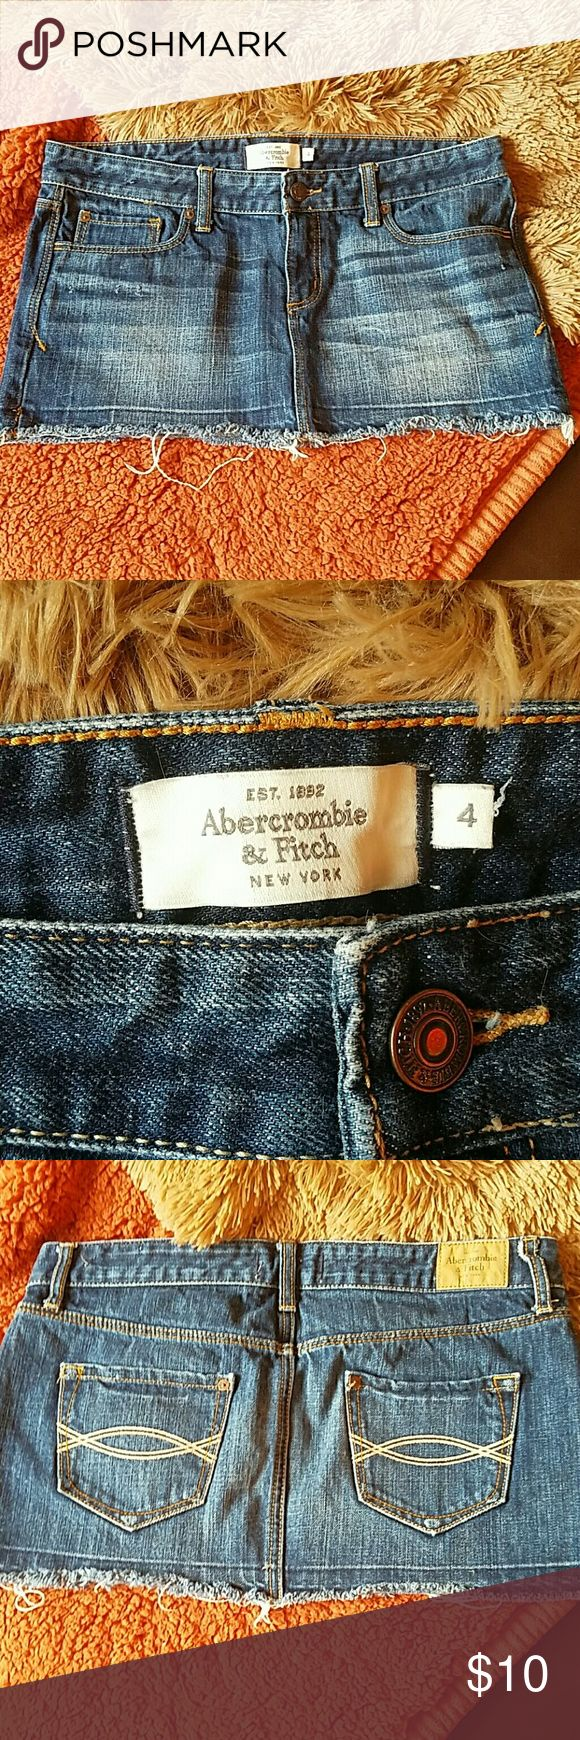 Abercrombie and Fitch Denim Mini Skirt Size 4 denim mini skirt Abercrombie & Fitch Skirts Mini